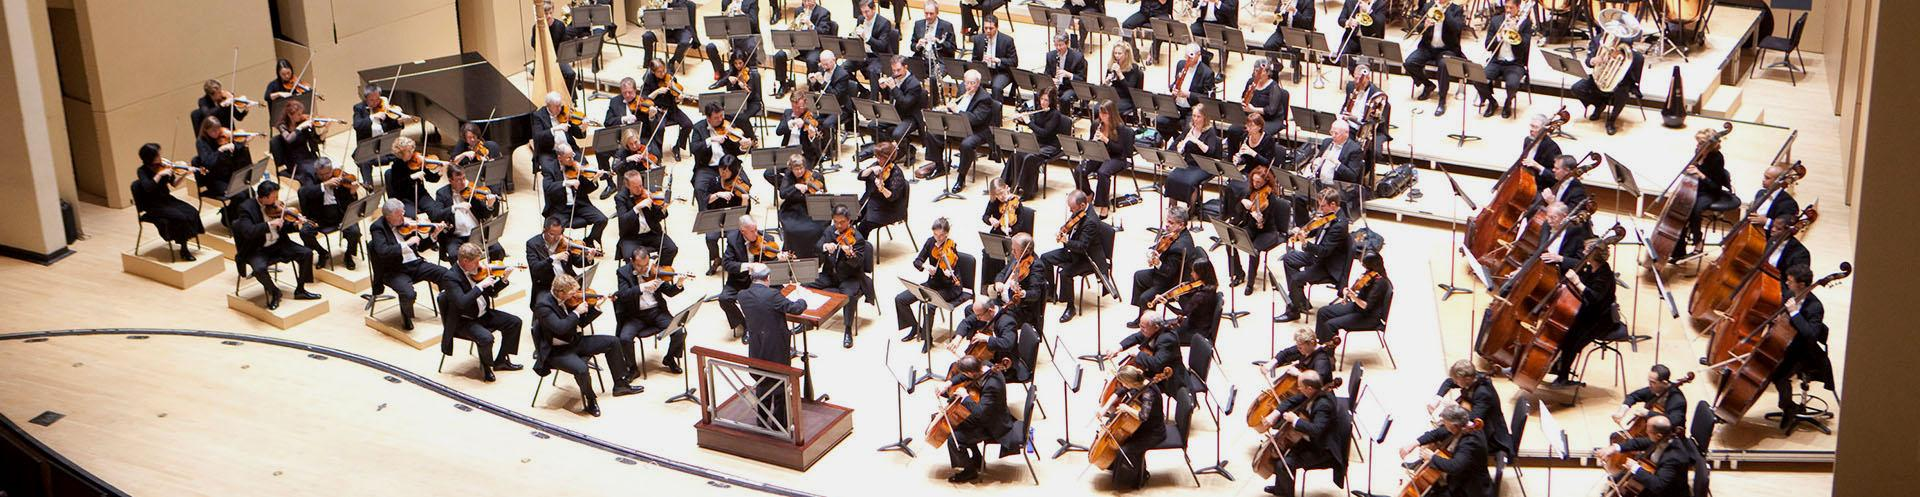 November 11: Atlanta Symphony at KSU